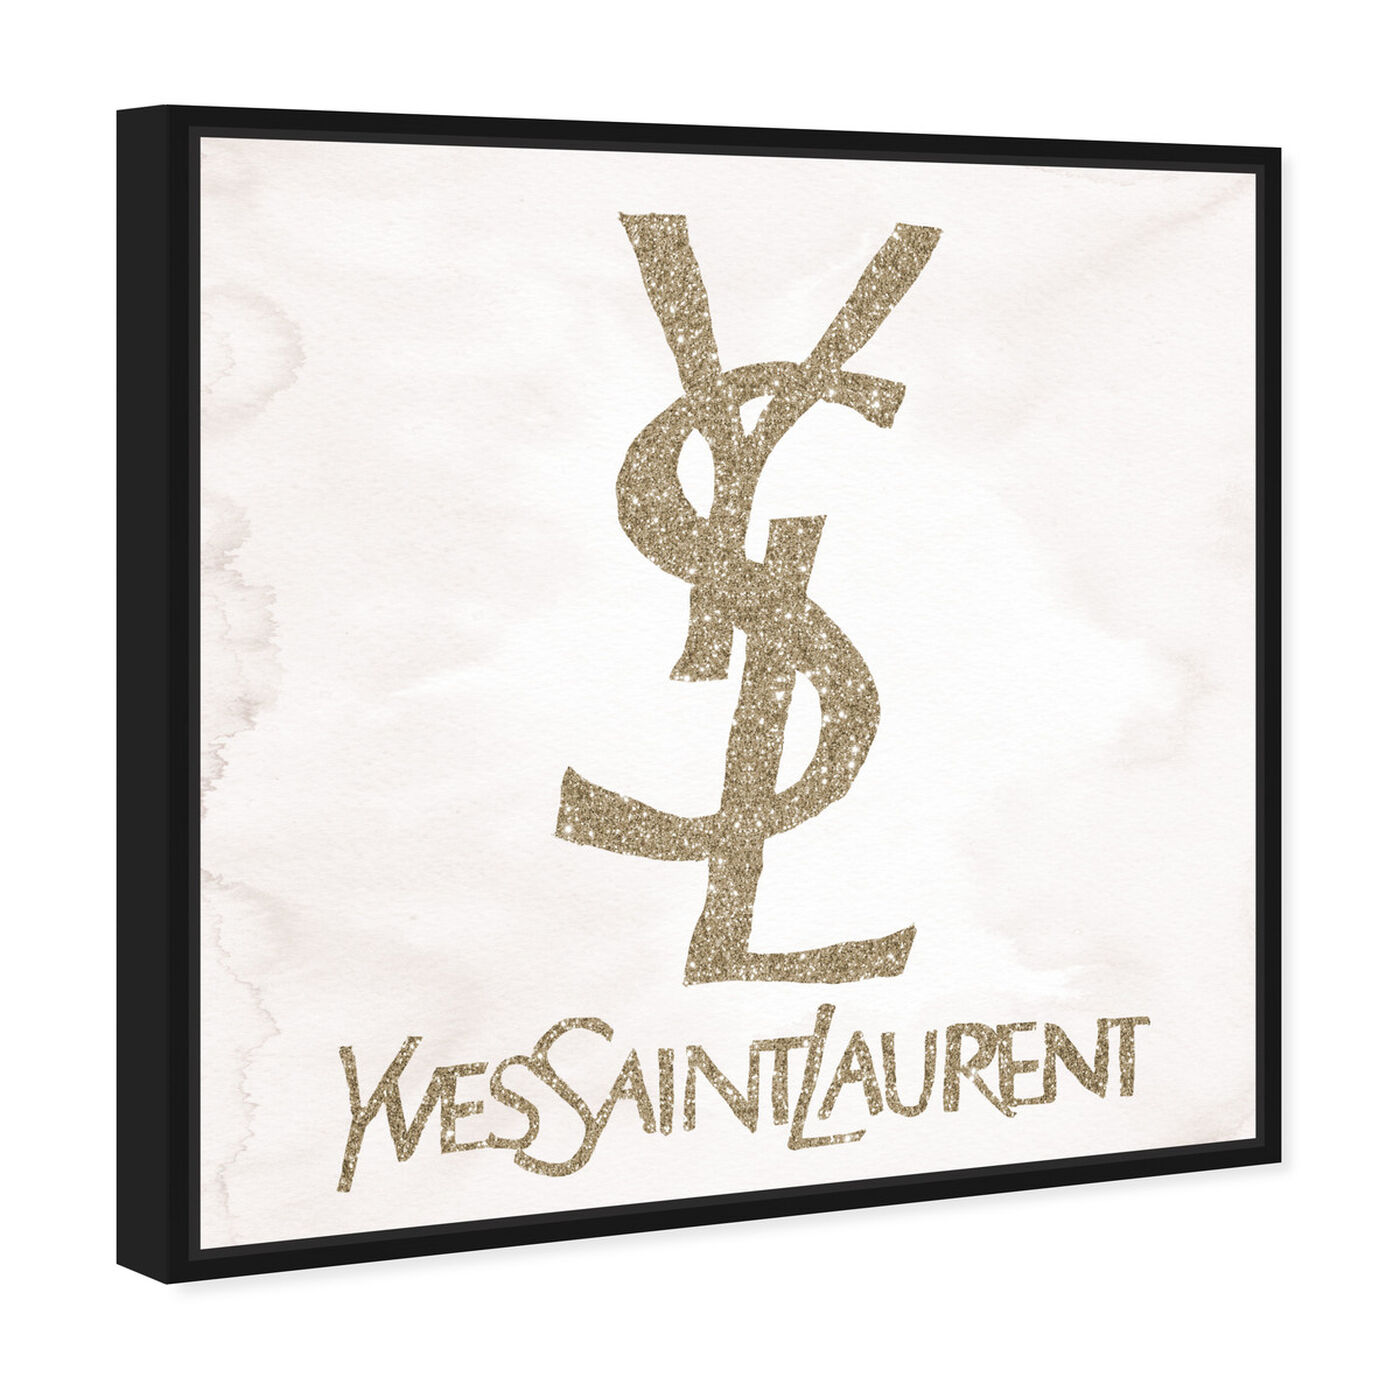 Angled view of Monsieur Yves featuring fashion and glam and lifestyle art.